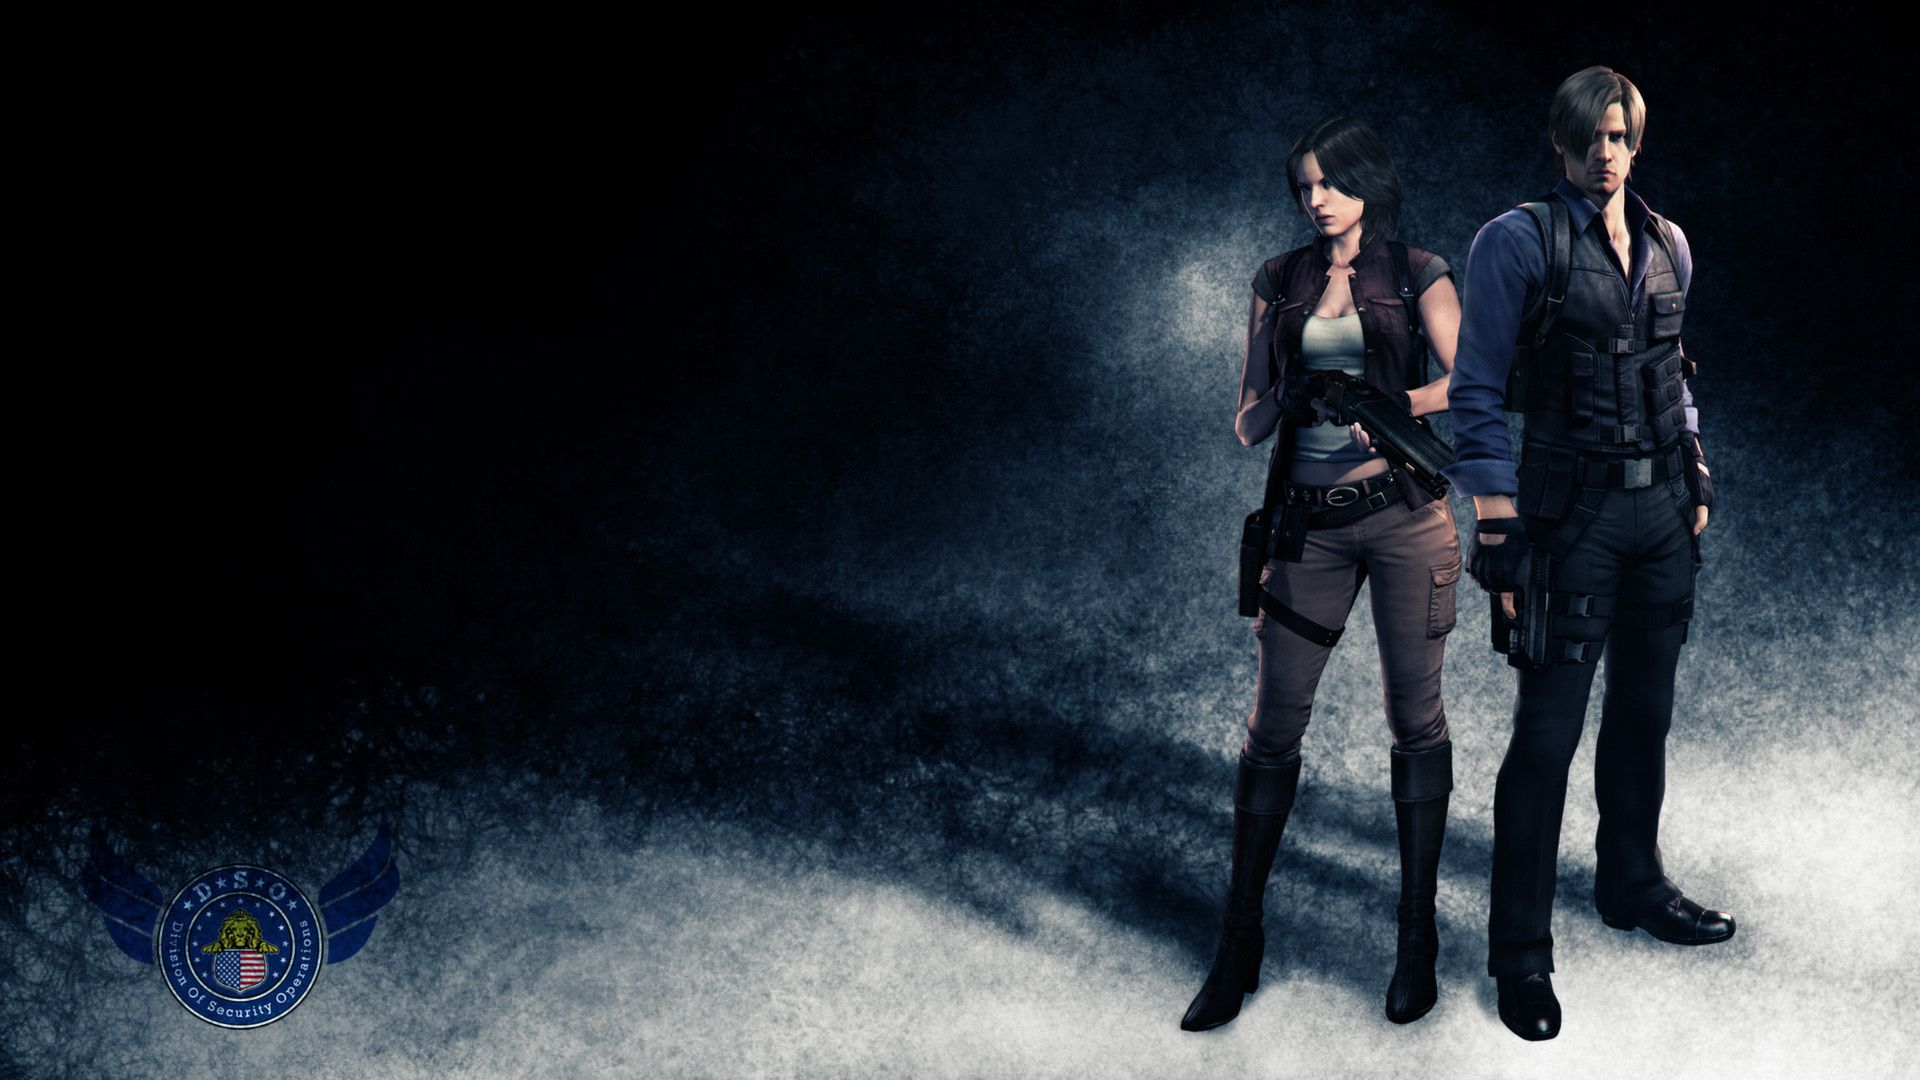 Resident Evil 6 Wallpaper For Mac Wve Resident Evil Resident